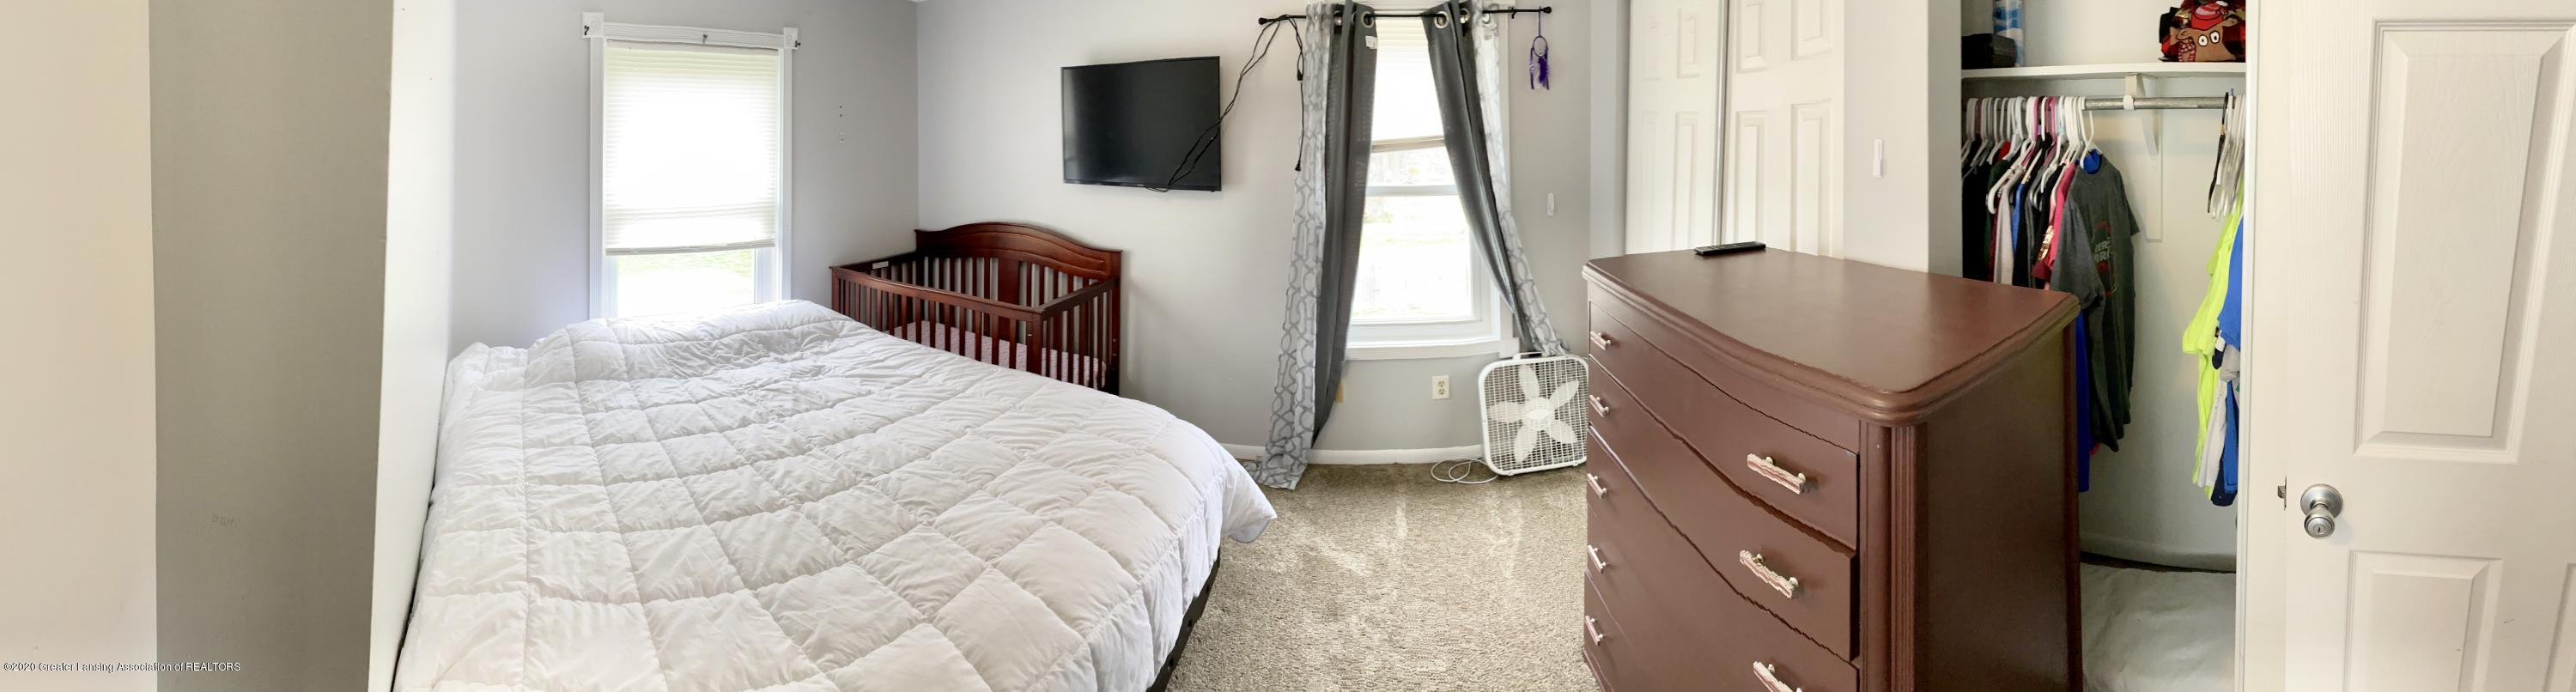 6013 Rutherford Ave - Bedroom - 6